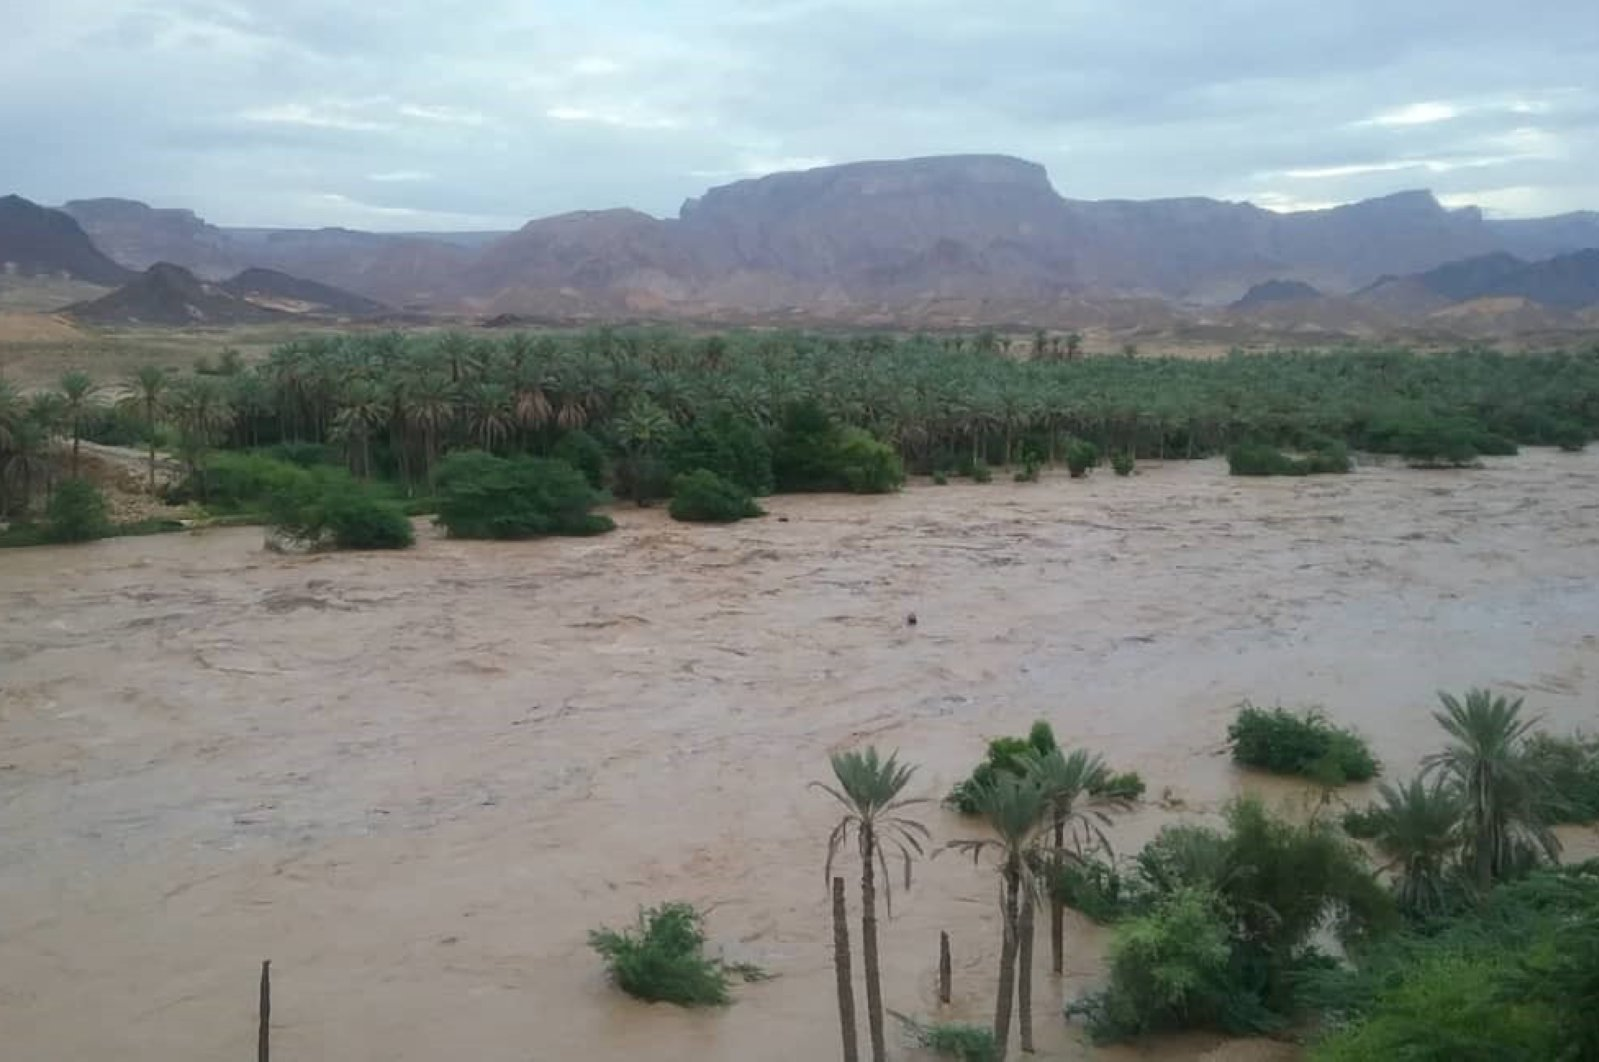 An area flooded from torrential rains brought by Cyclone Nisarga which left more than 10 people dead and dozens injured,  Hadramout province, eastern Yemen, June 3, 2020.  (AFP Photo)